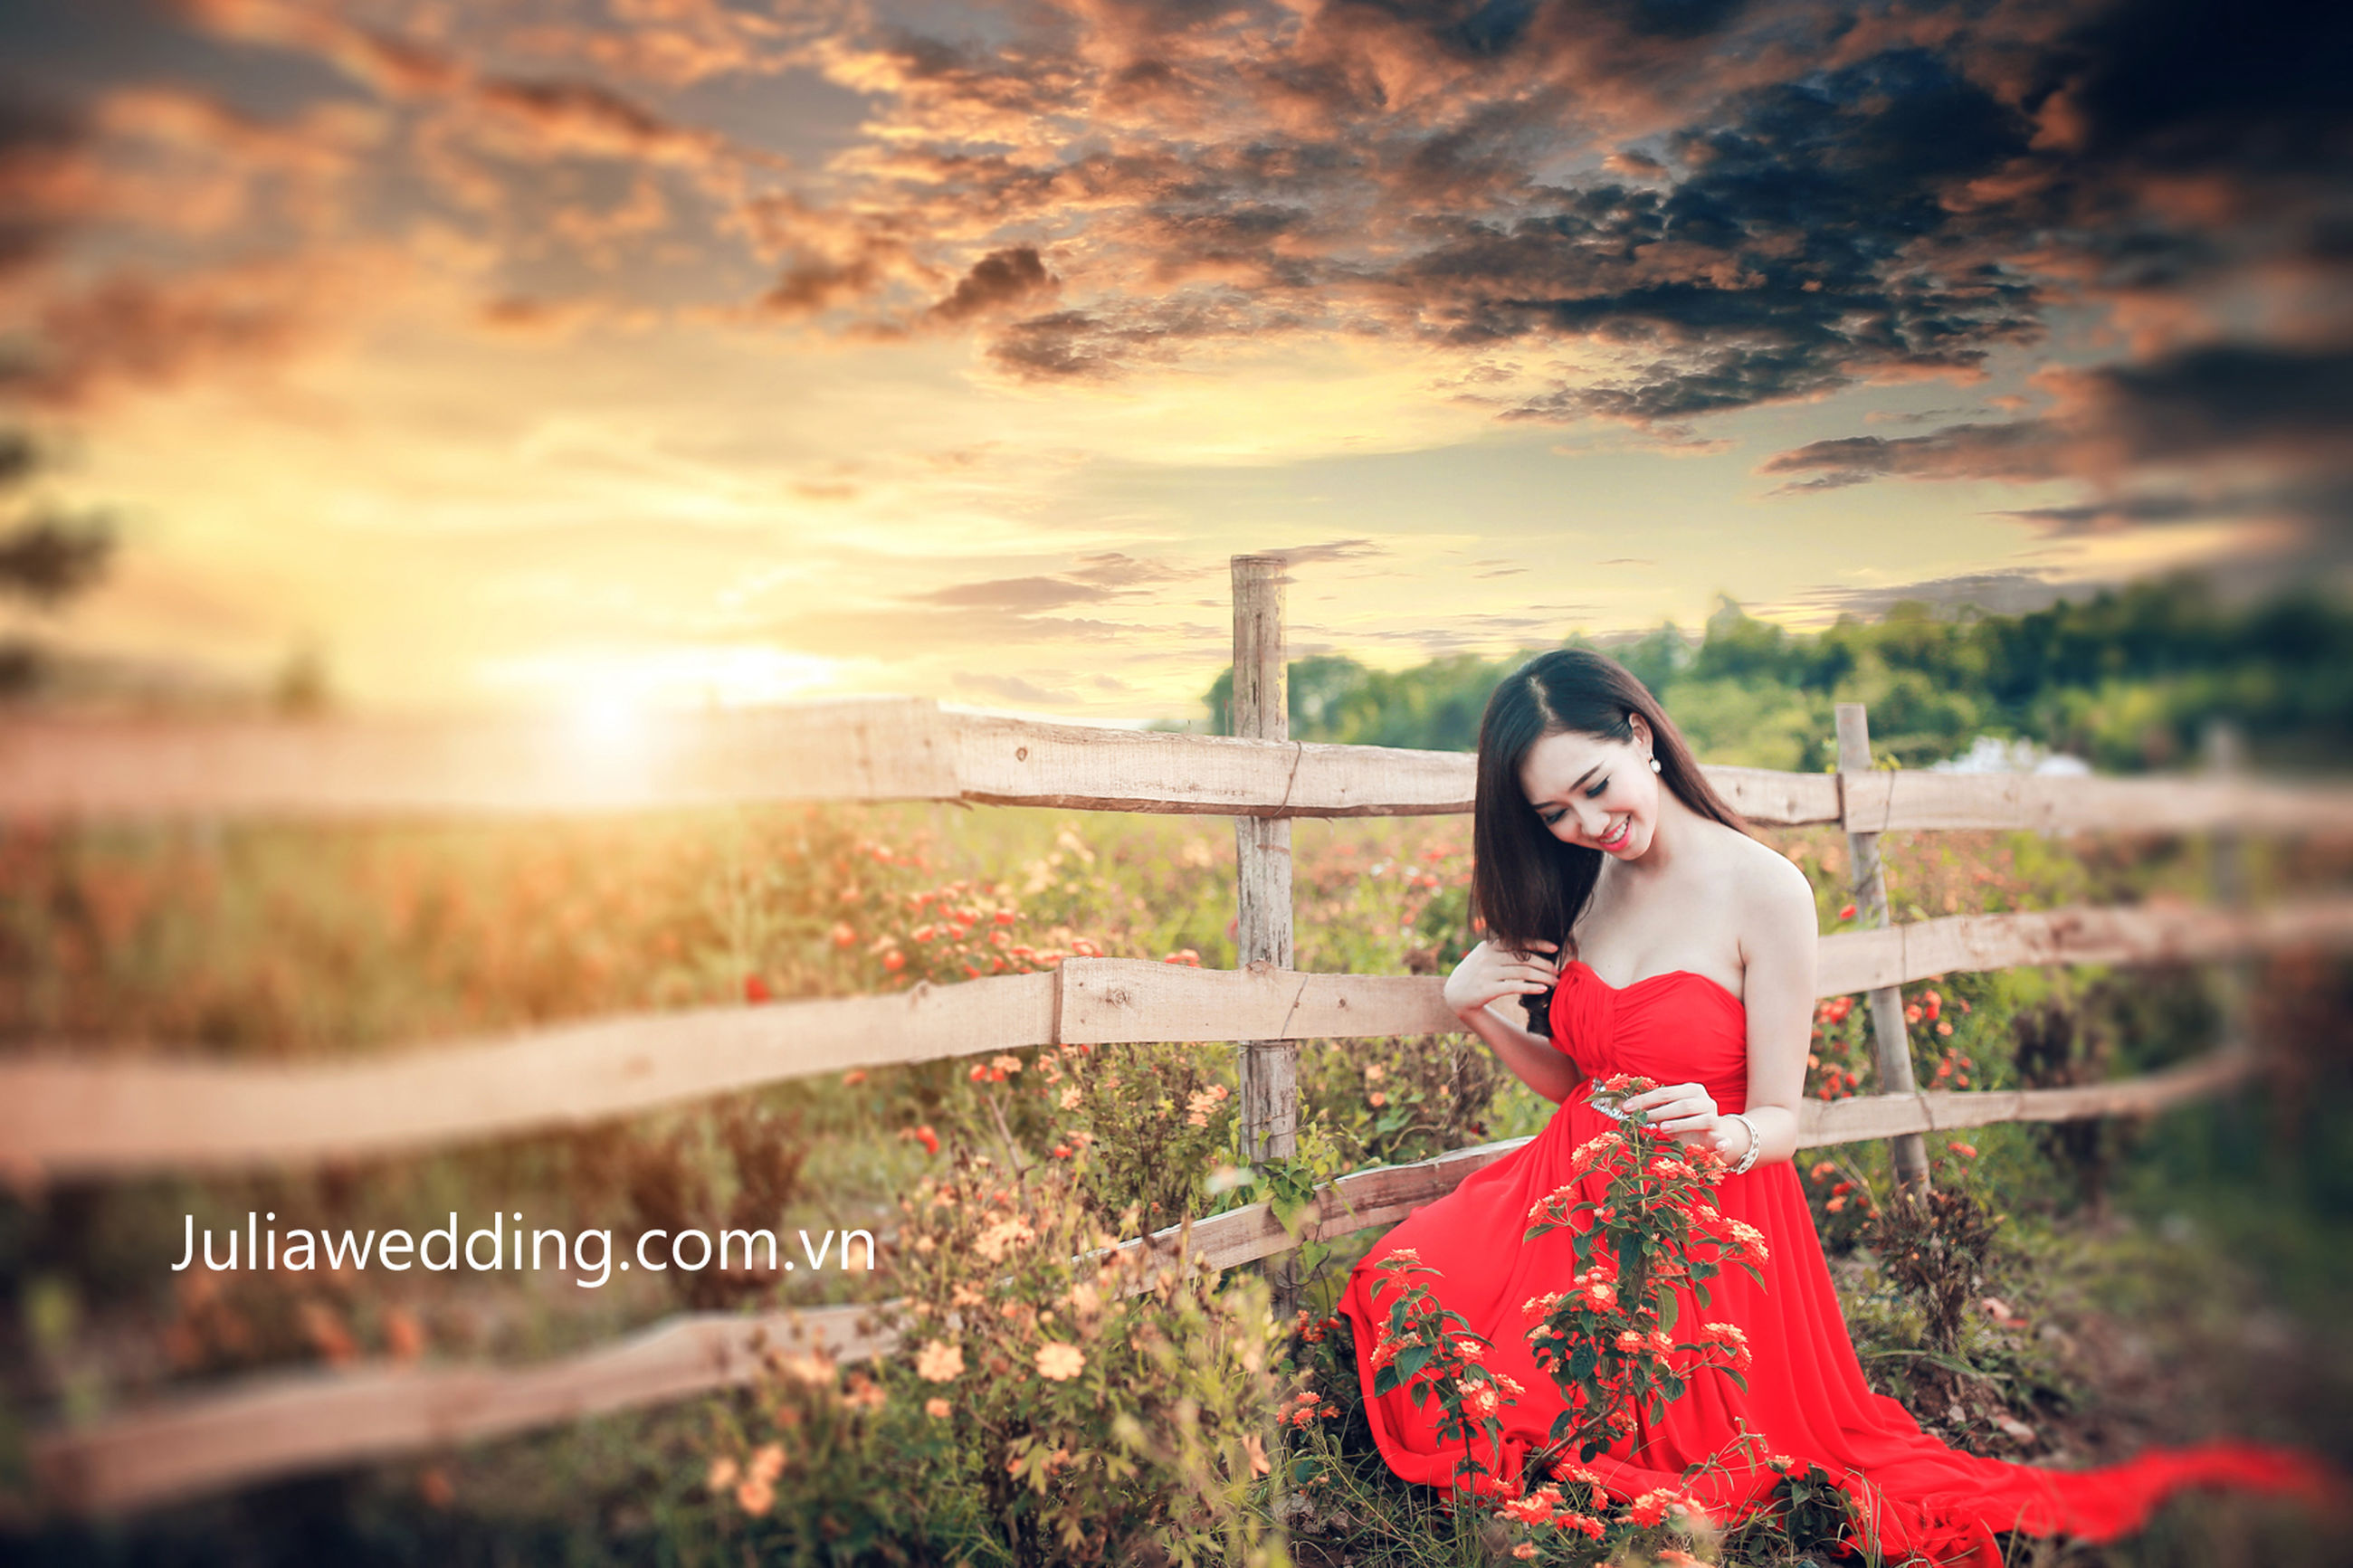 sky, lifestyles, leisure activity, standing, sunset, young adult, person, cloud - sky, casual clothing, young women, three quarter length, nature, waist up, beauty in nature, tranquility, sunlight, outdoors, portrait